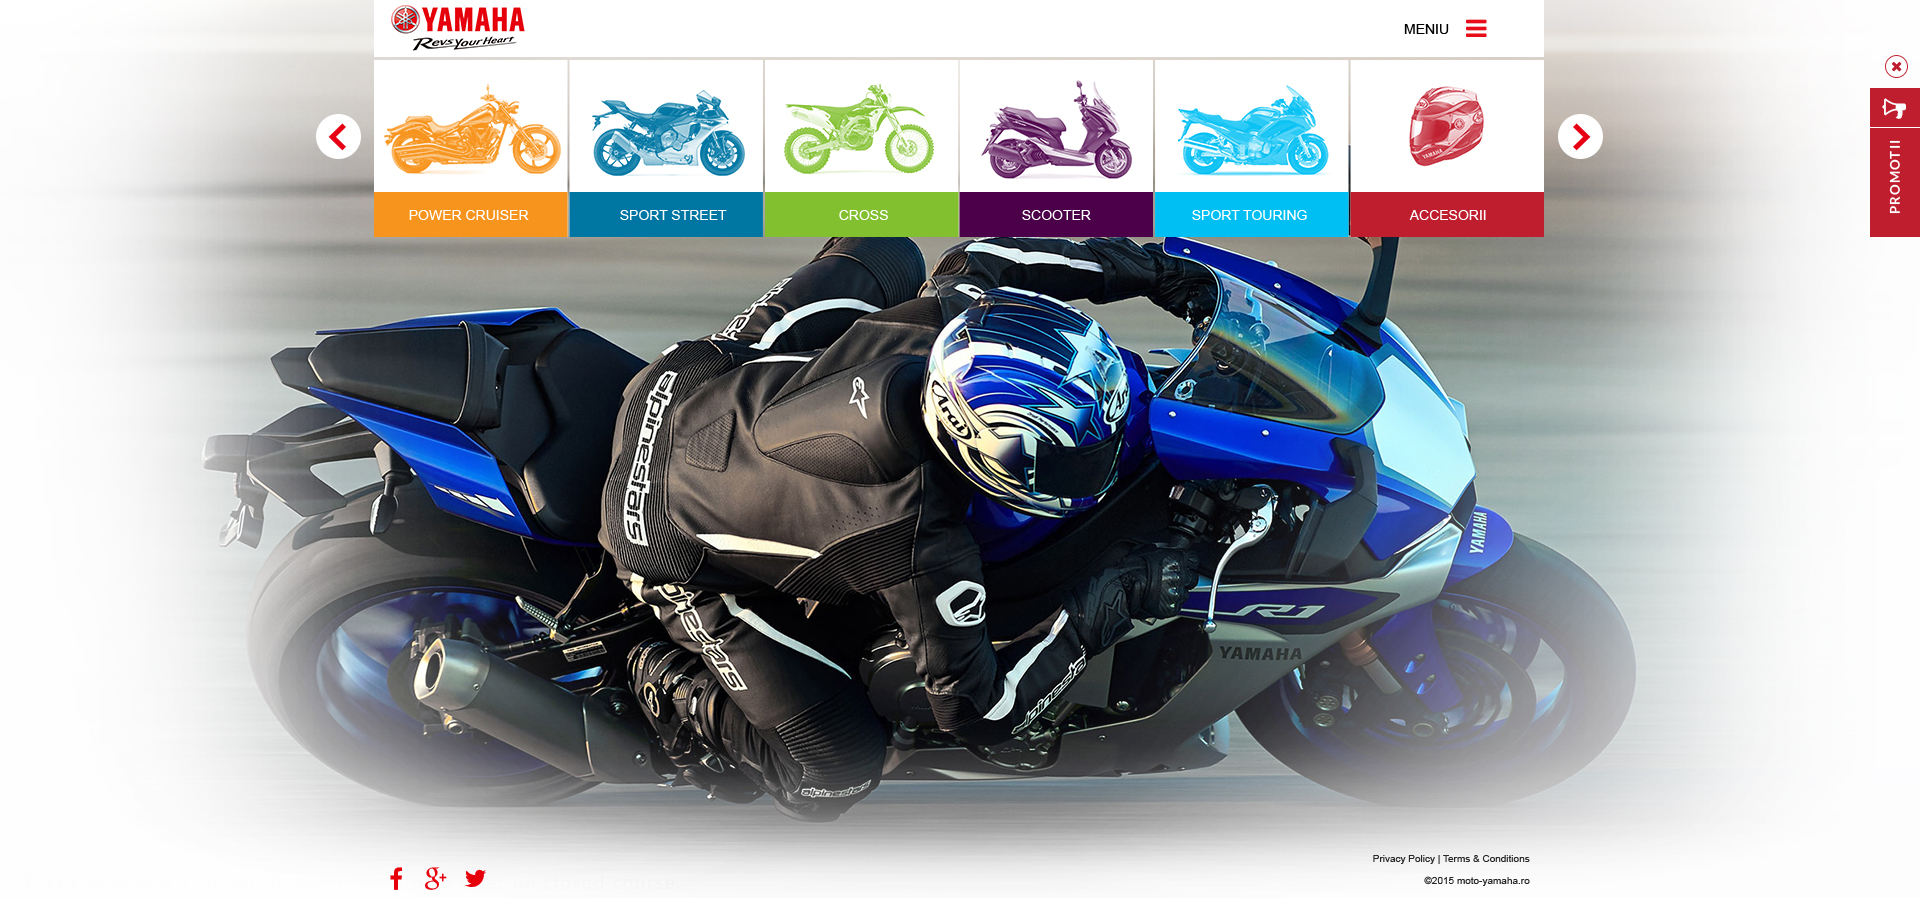 Yamaha motorcycles - Creative Ones